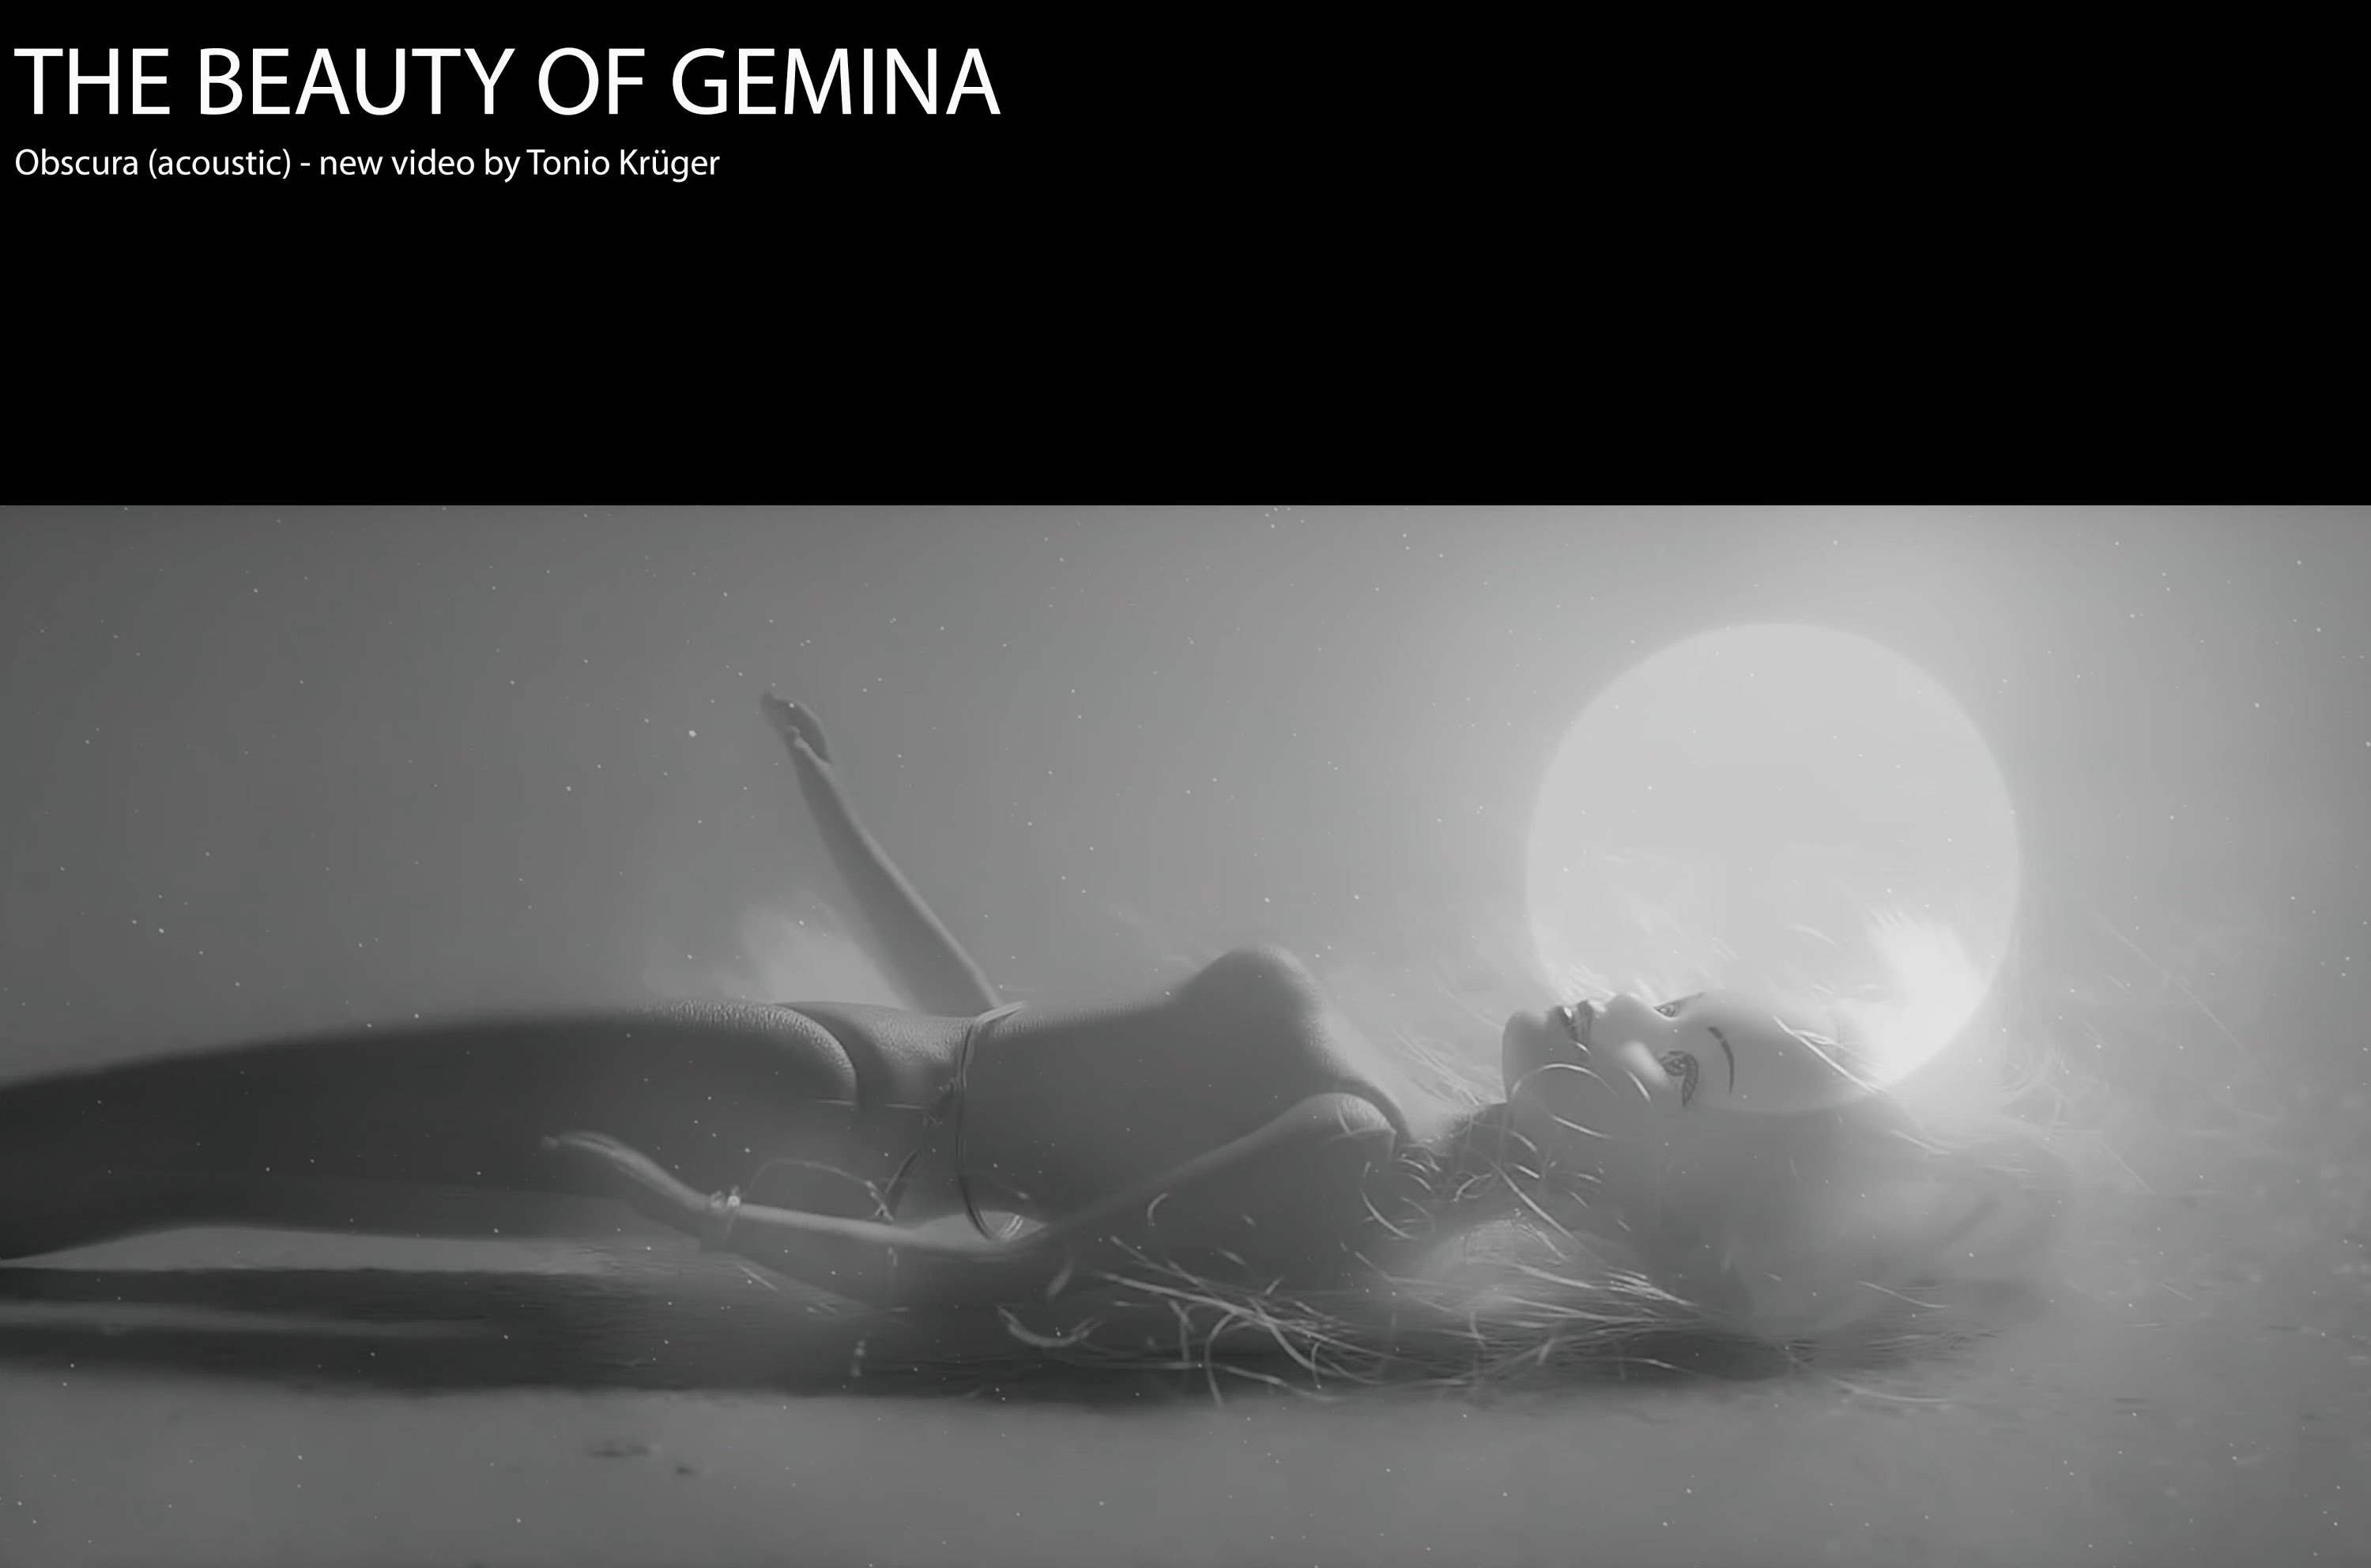 The Beauty Of Gemina - Obscura (Acoustic Version - Official Video)